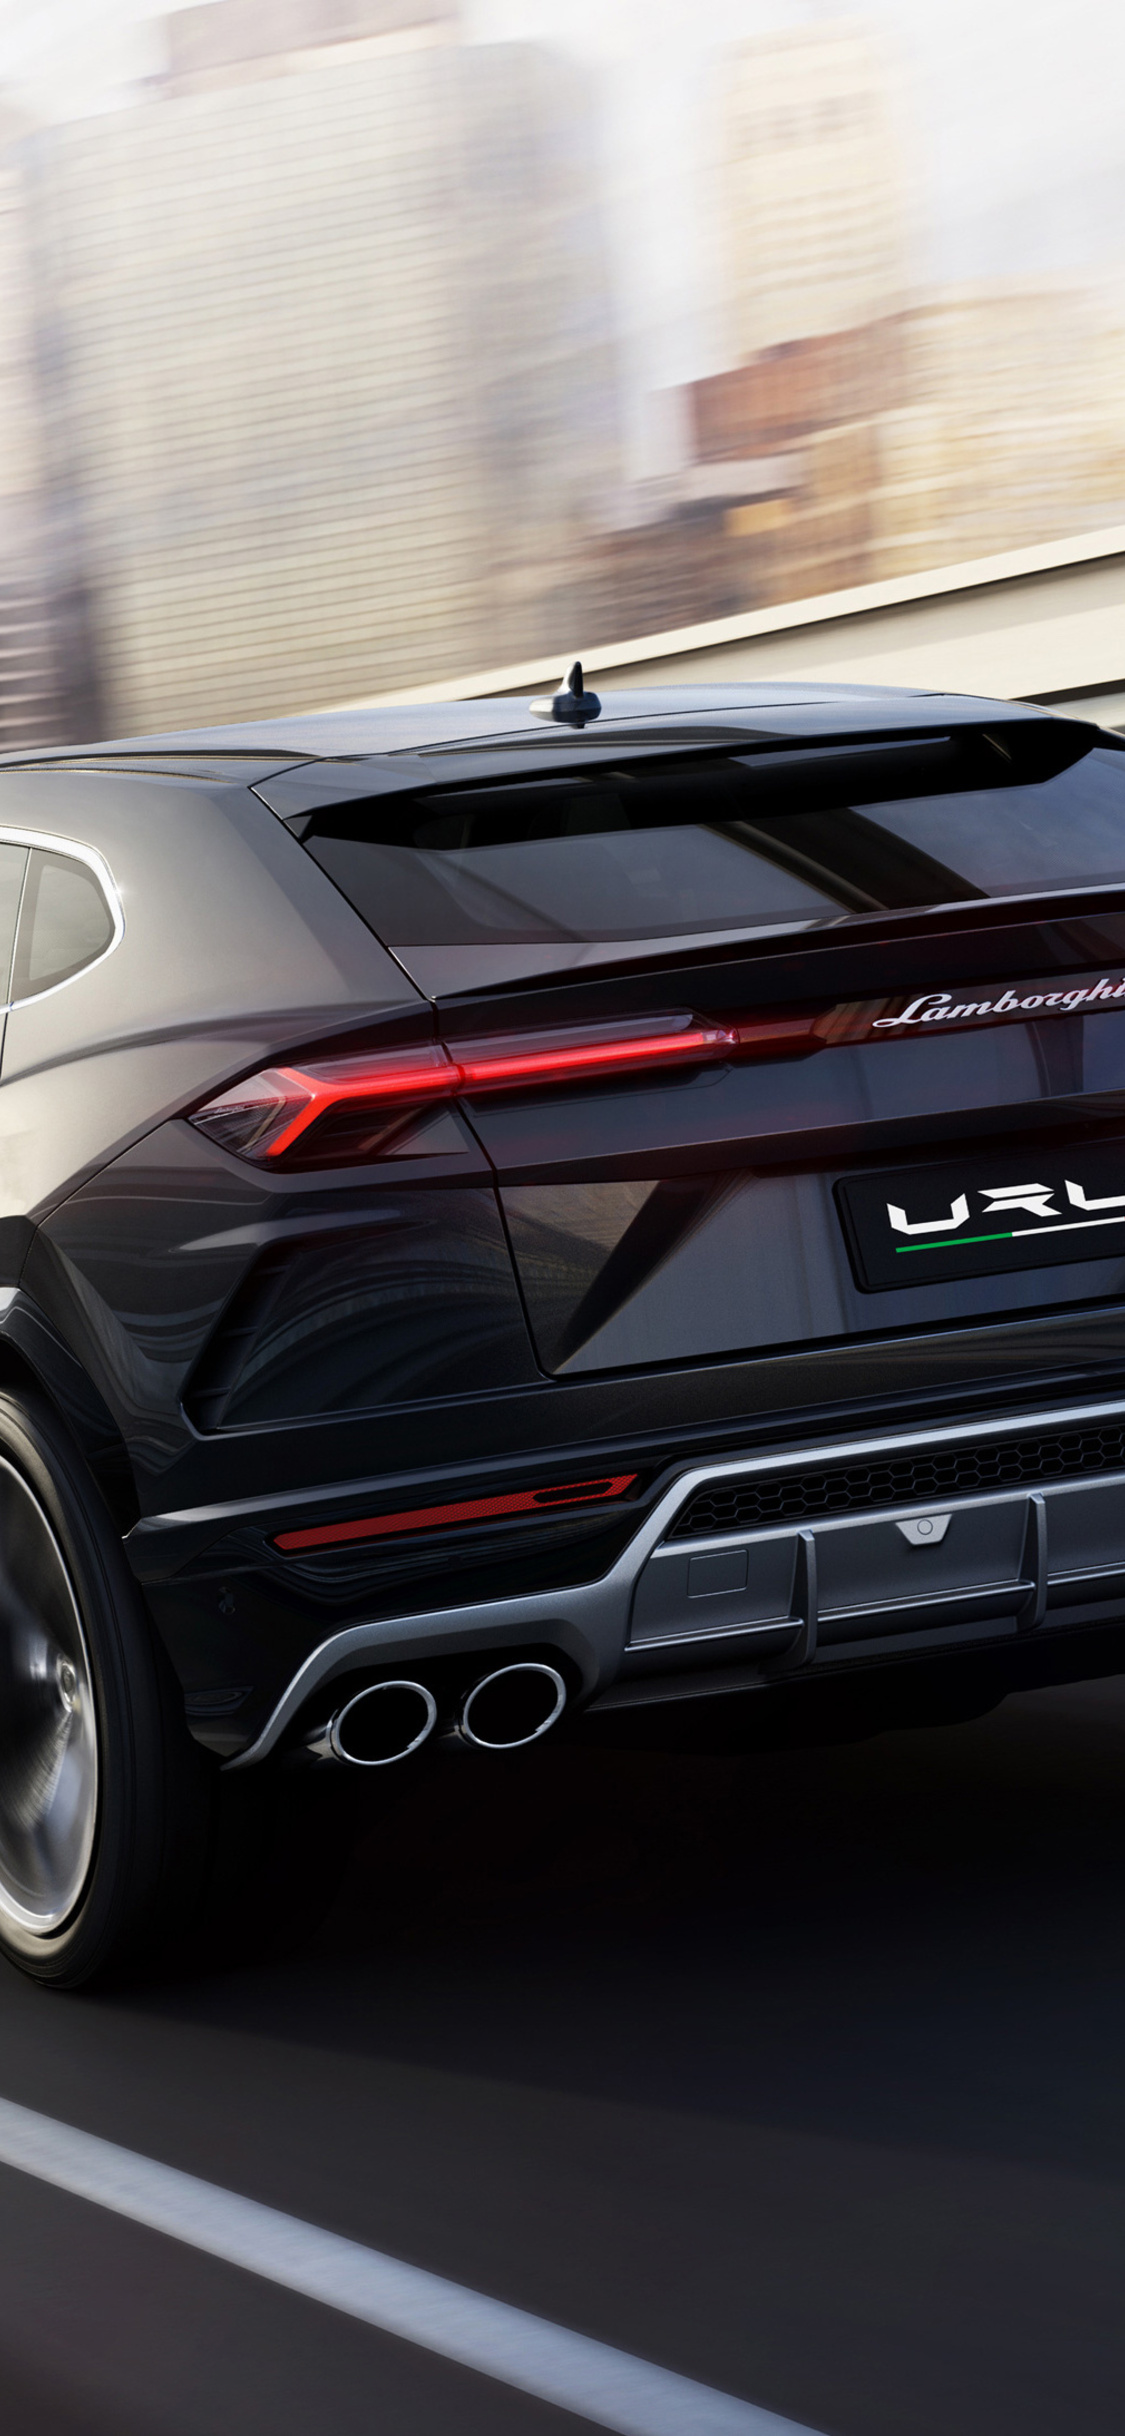 Lamborghini Urus Wallpaper For Iphone X Car Review And Gallery